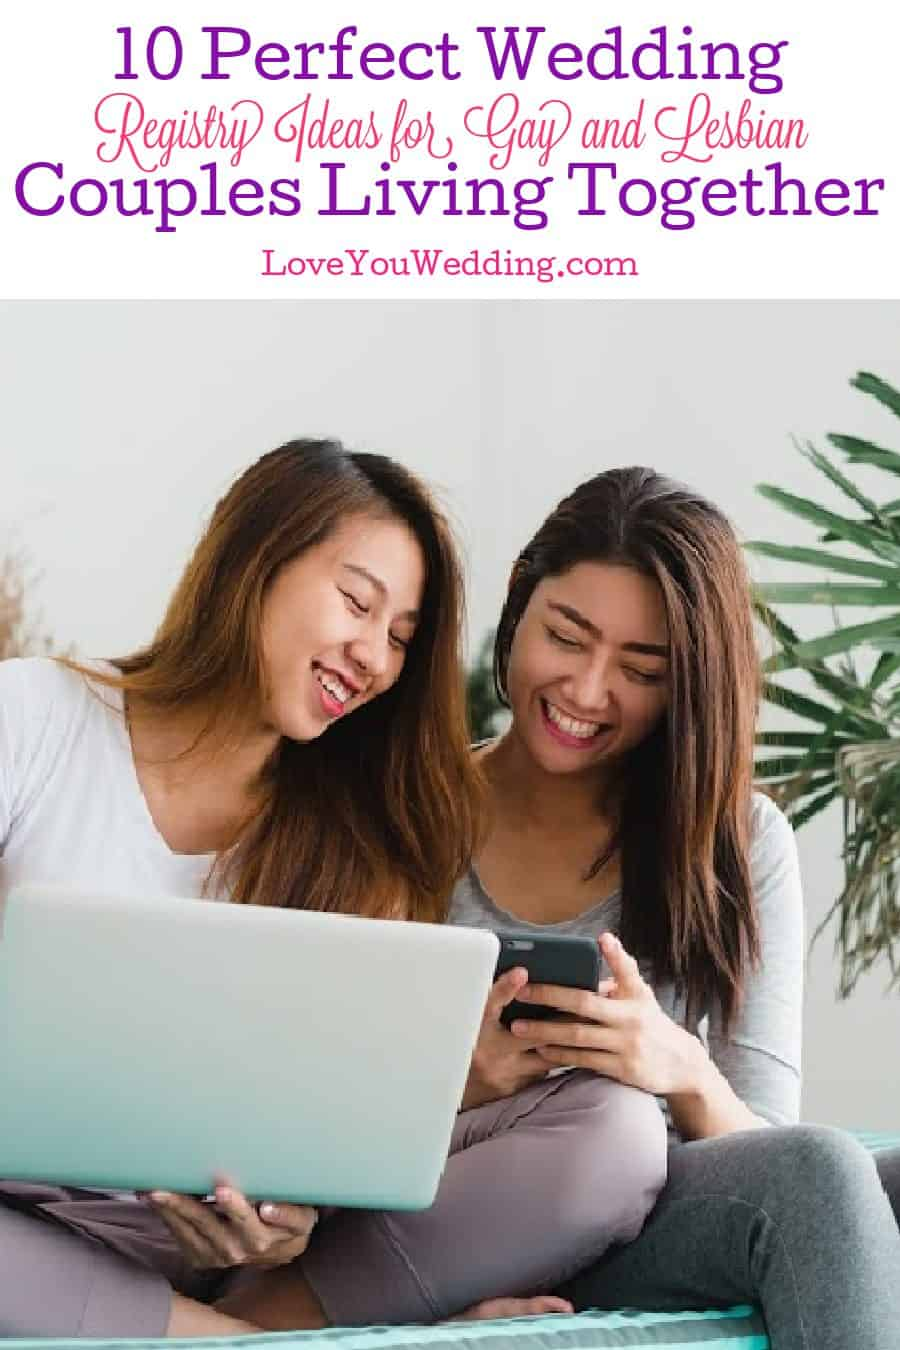 Looking for some wedding registry ideas for gay and lesbian couples living together? Add one or more of these 10 gifts to your wish list!